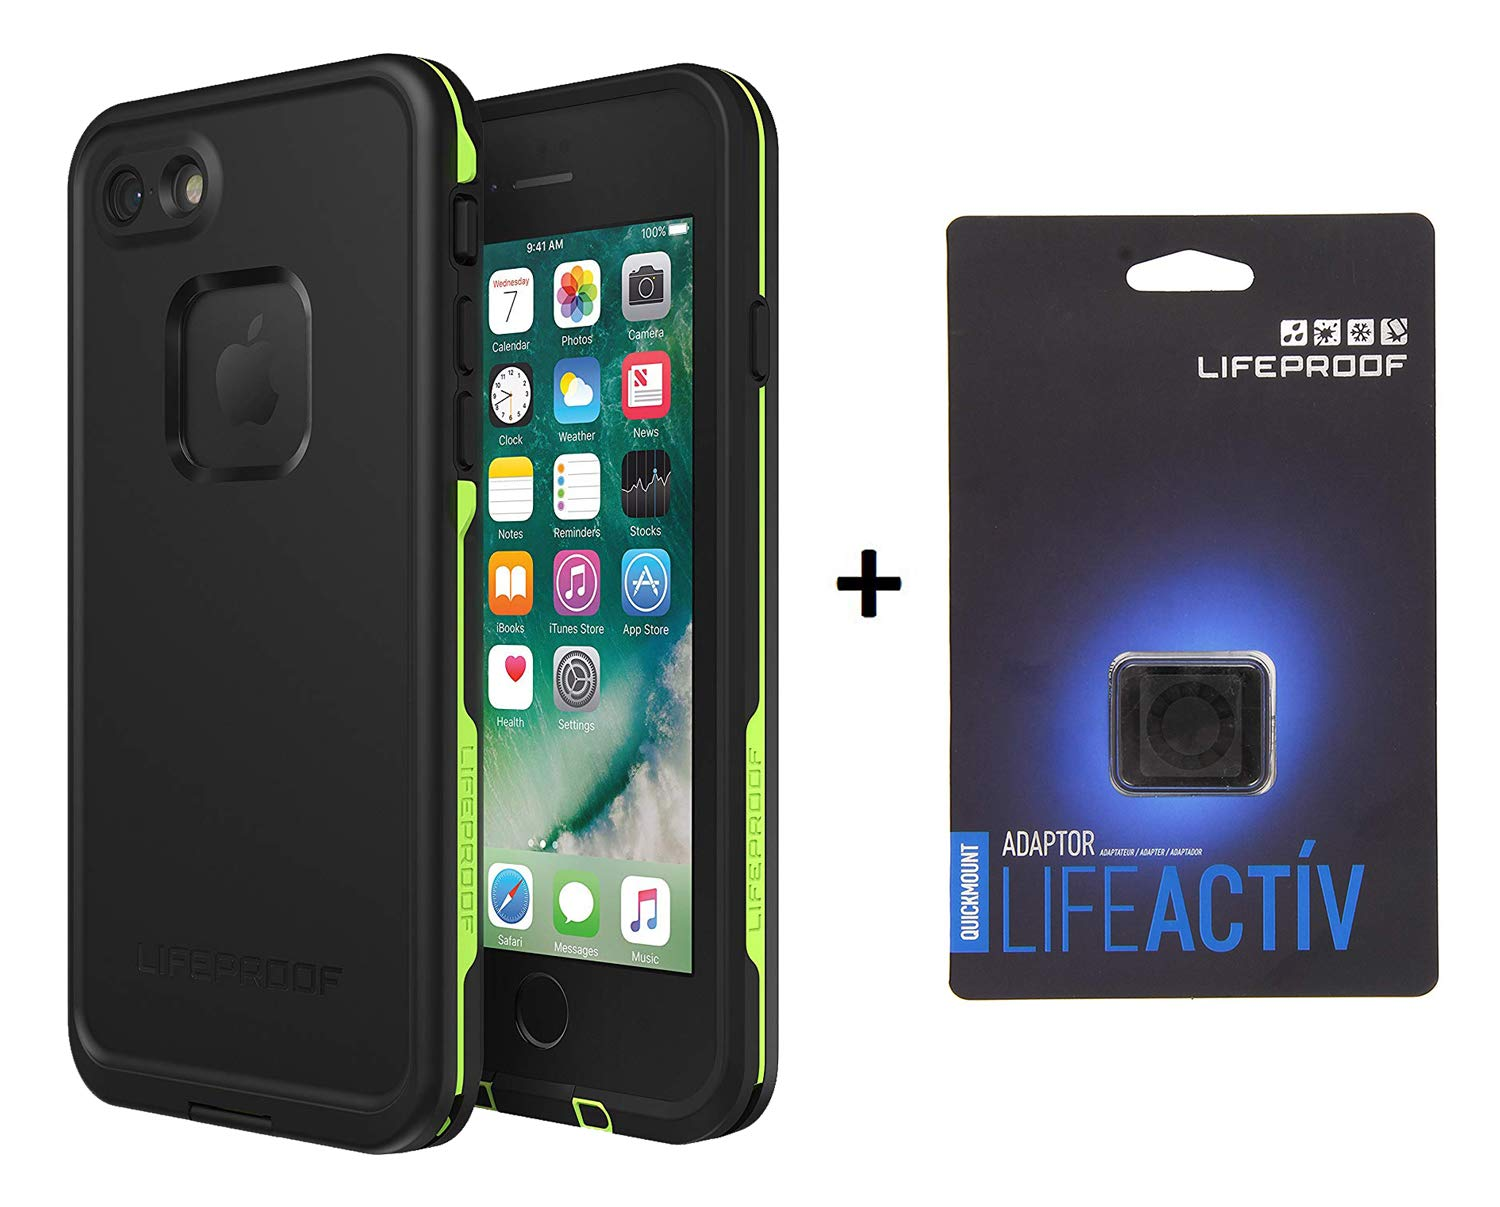 Lifeproof FRĒ Series Waterproof Case for iPhone 8 & 7 (ONLY) - Matching LIFEACTIV UICKMOUNT Adapter (Night LITE)